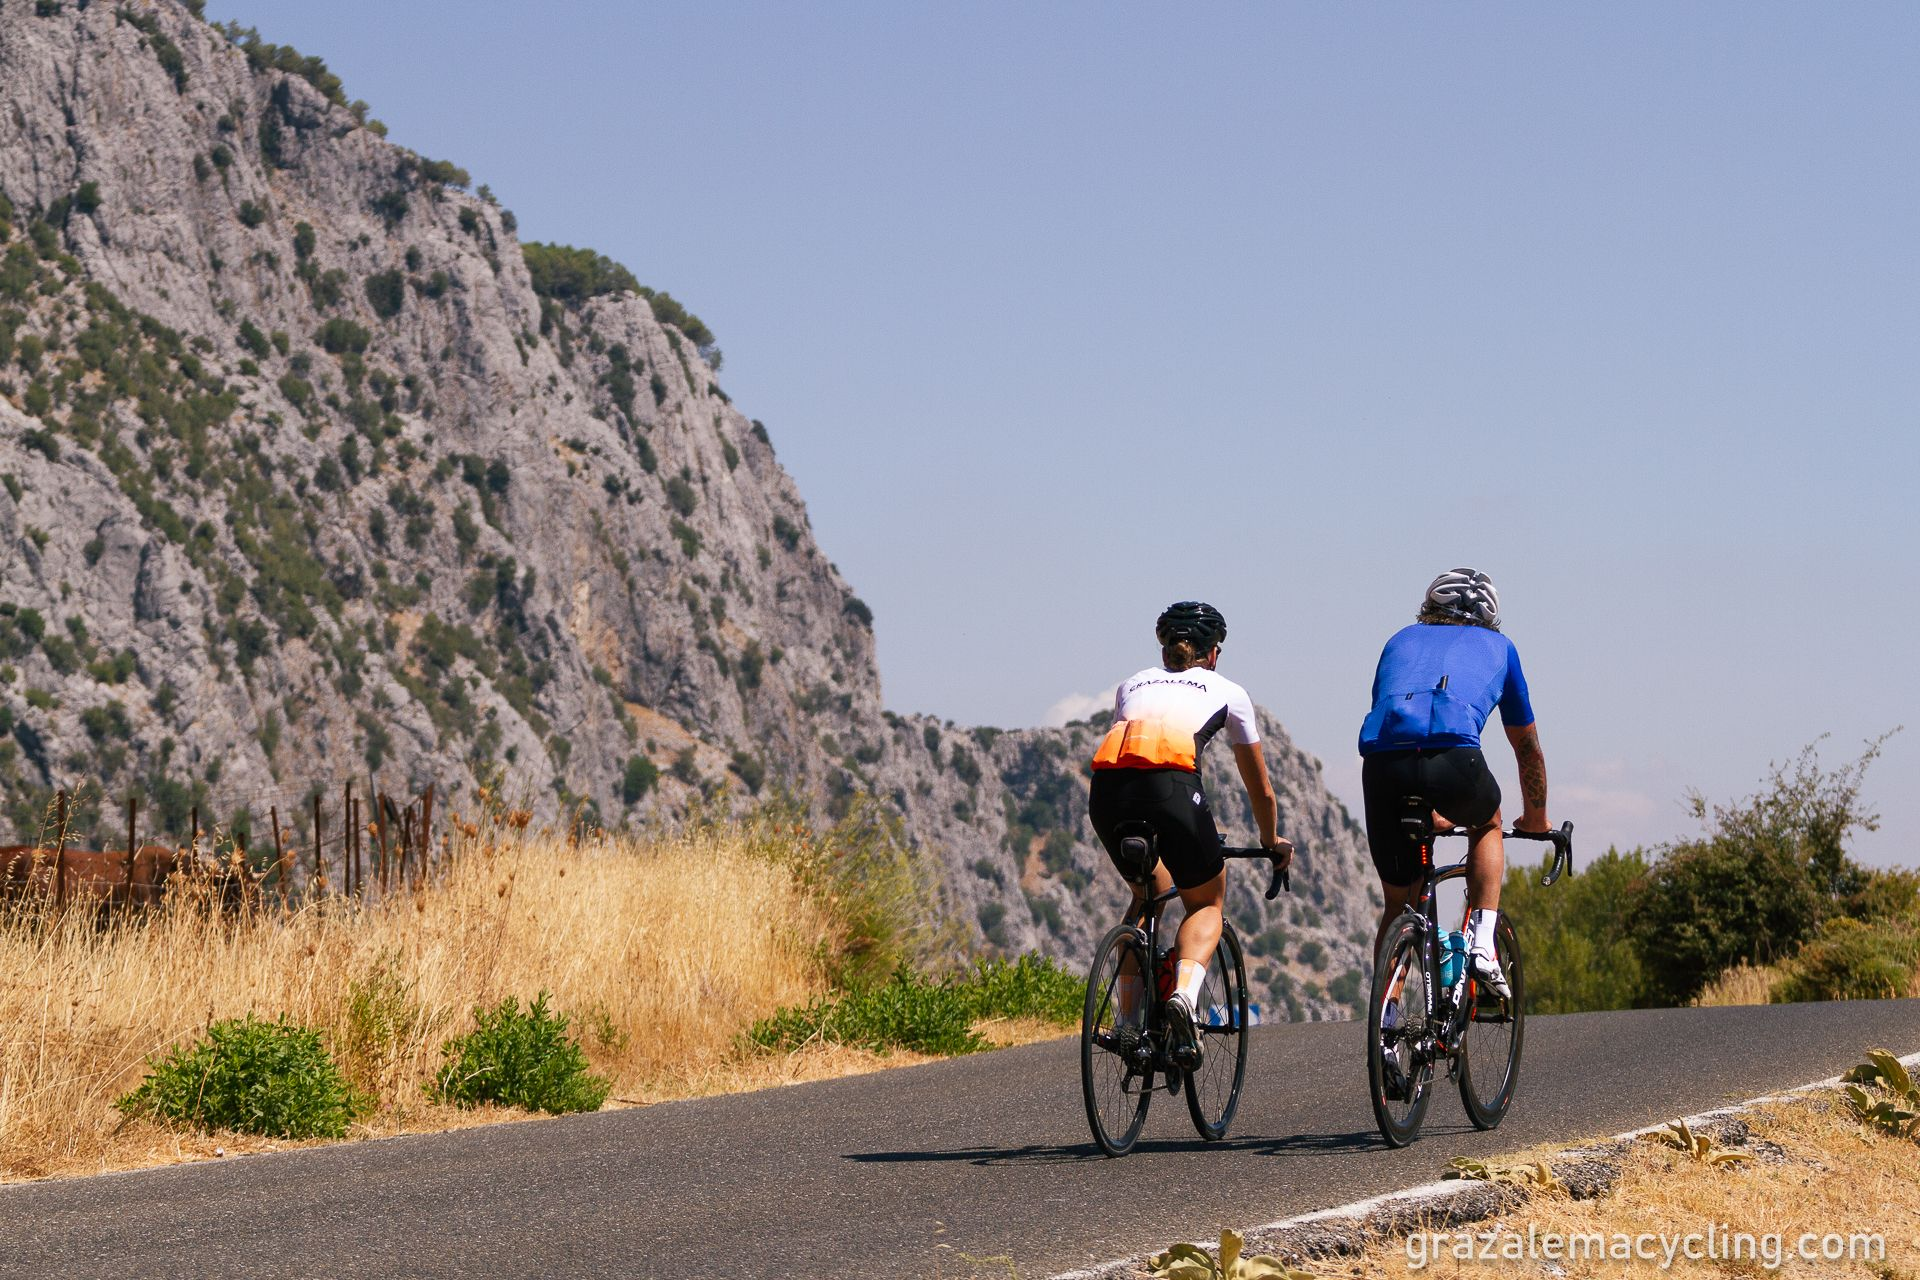 Fietsen in Andalusie (Spanje)